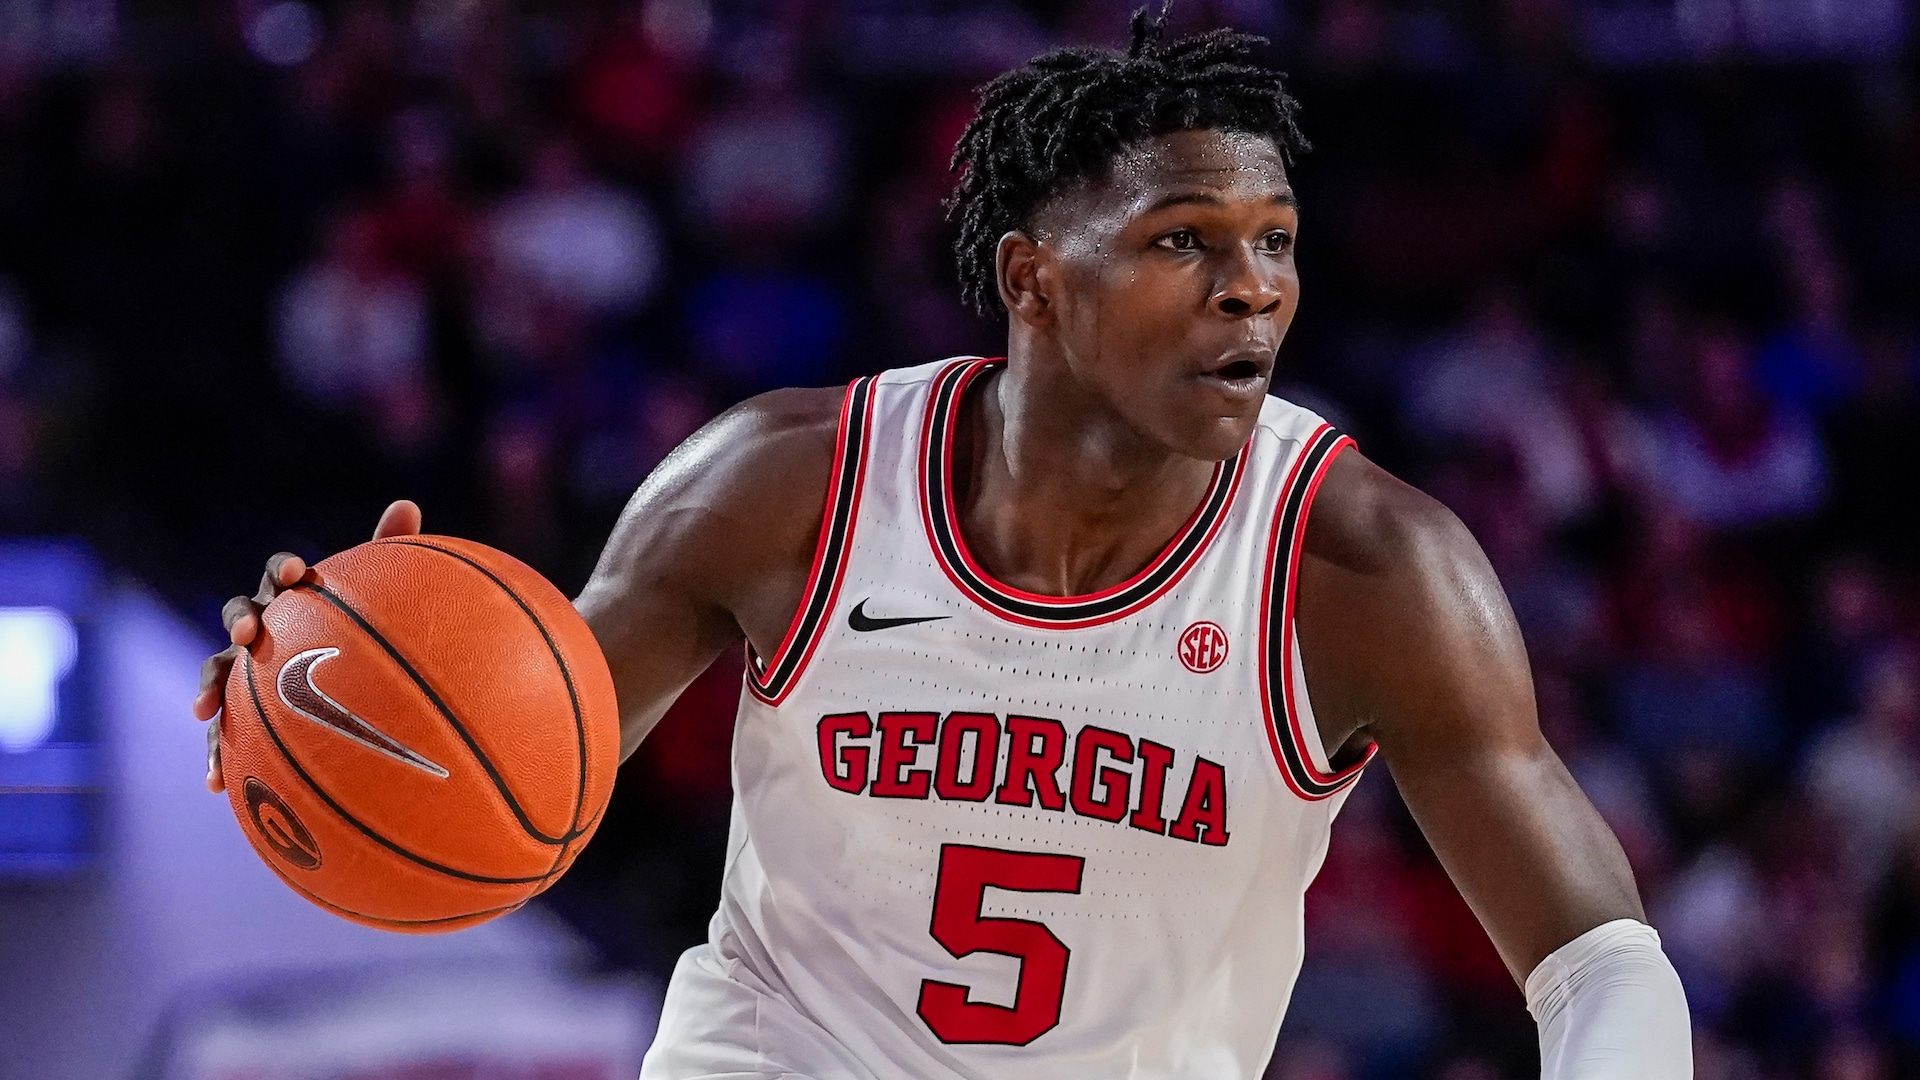 Georgia's Anthony Edwards armed with NBA athleticism, NBA strength